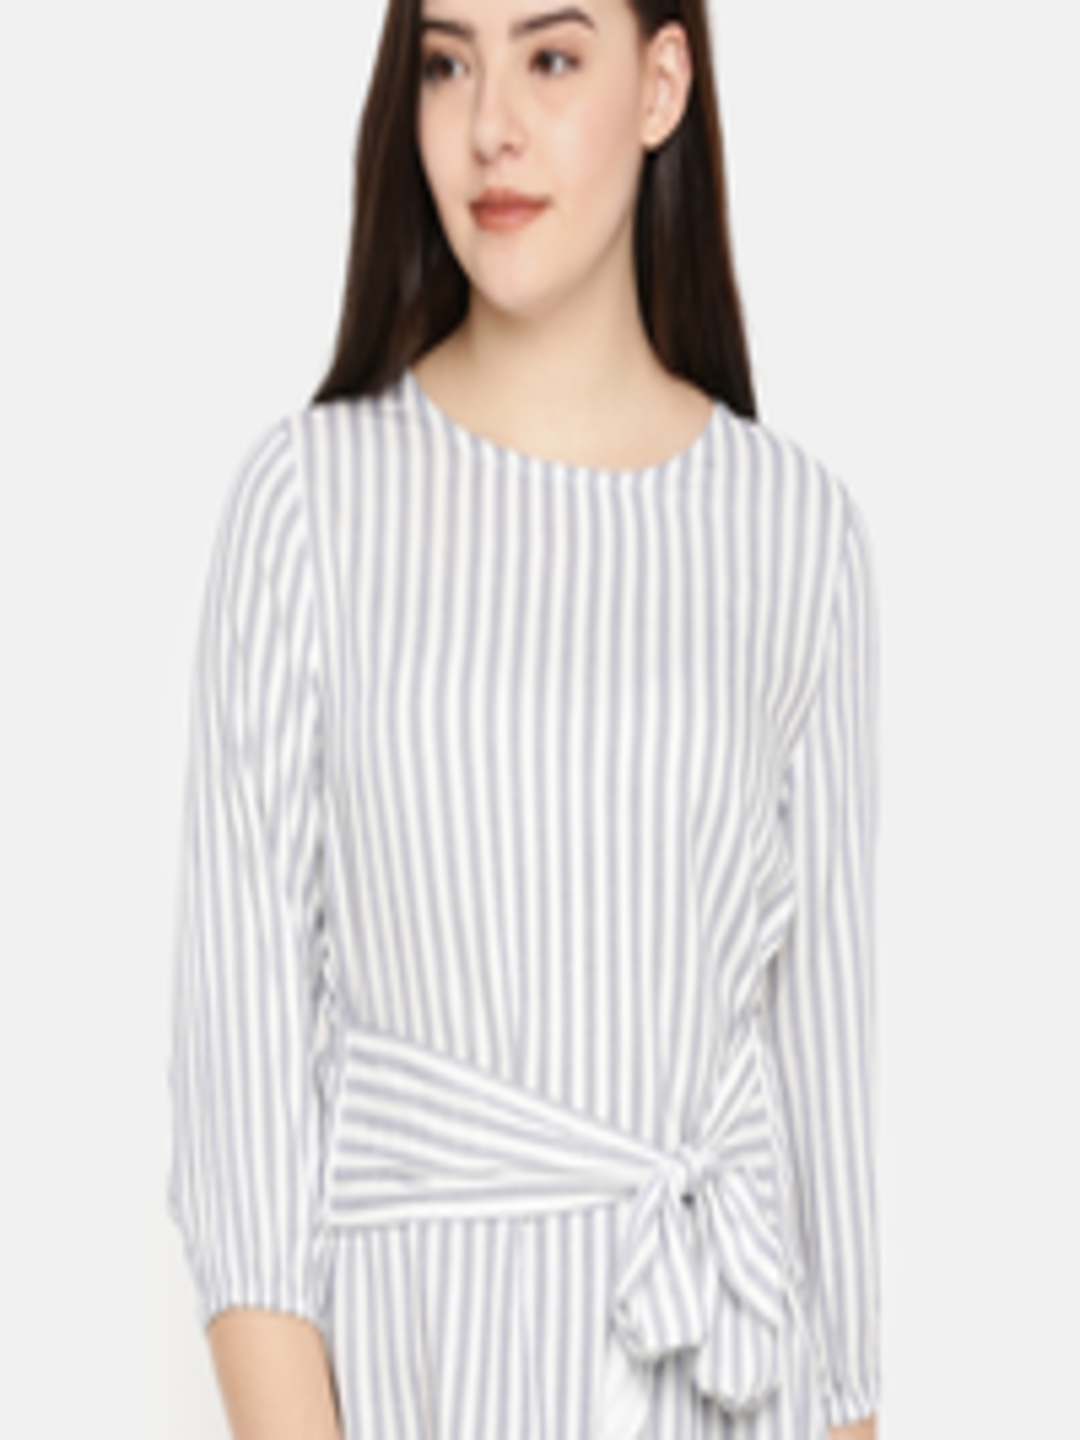 ced69e522d Buy Fame Forever By Lifestyle Women White & Navy Blue Striped Top - Tops  for Women 6919351 | Myntra